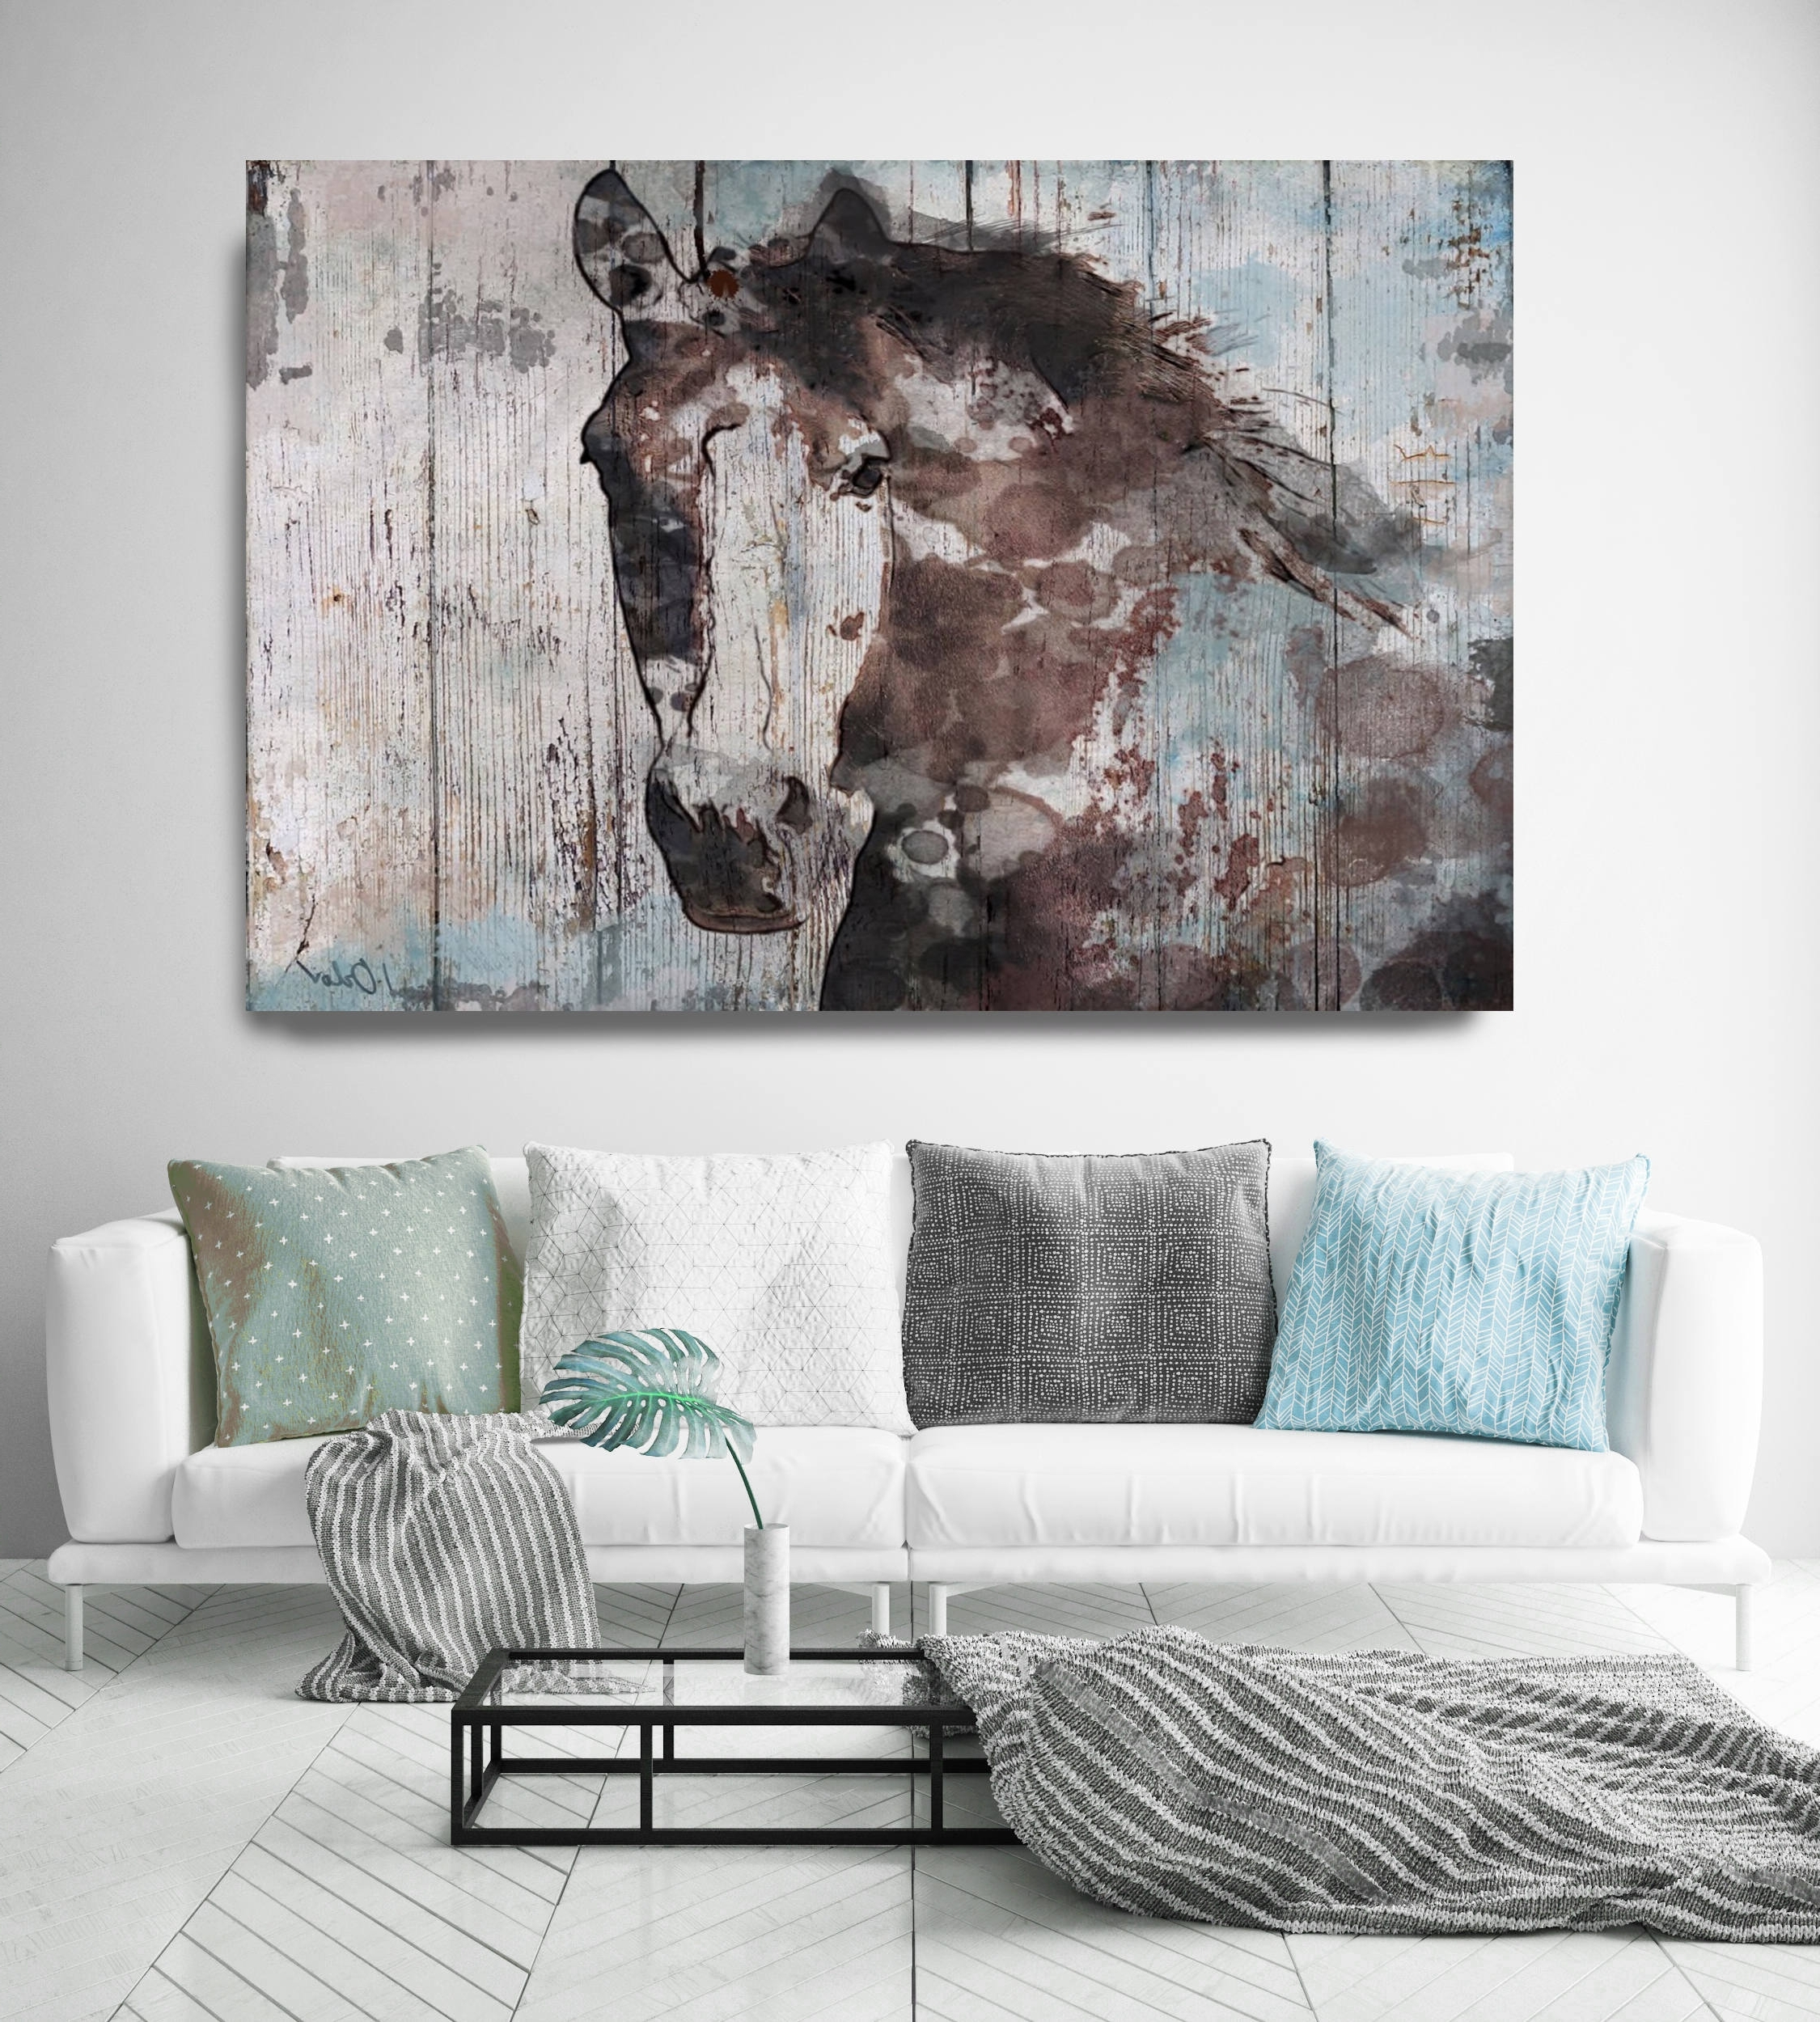 Widely Used Rustic Canvas Wall Art For Wild Blue Horse (View 5 of 15)